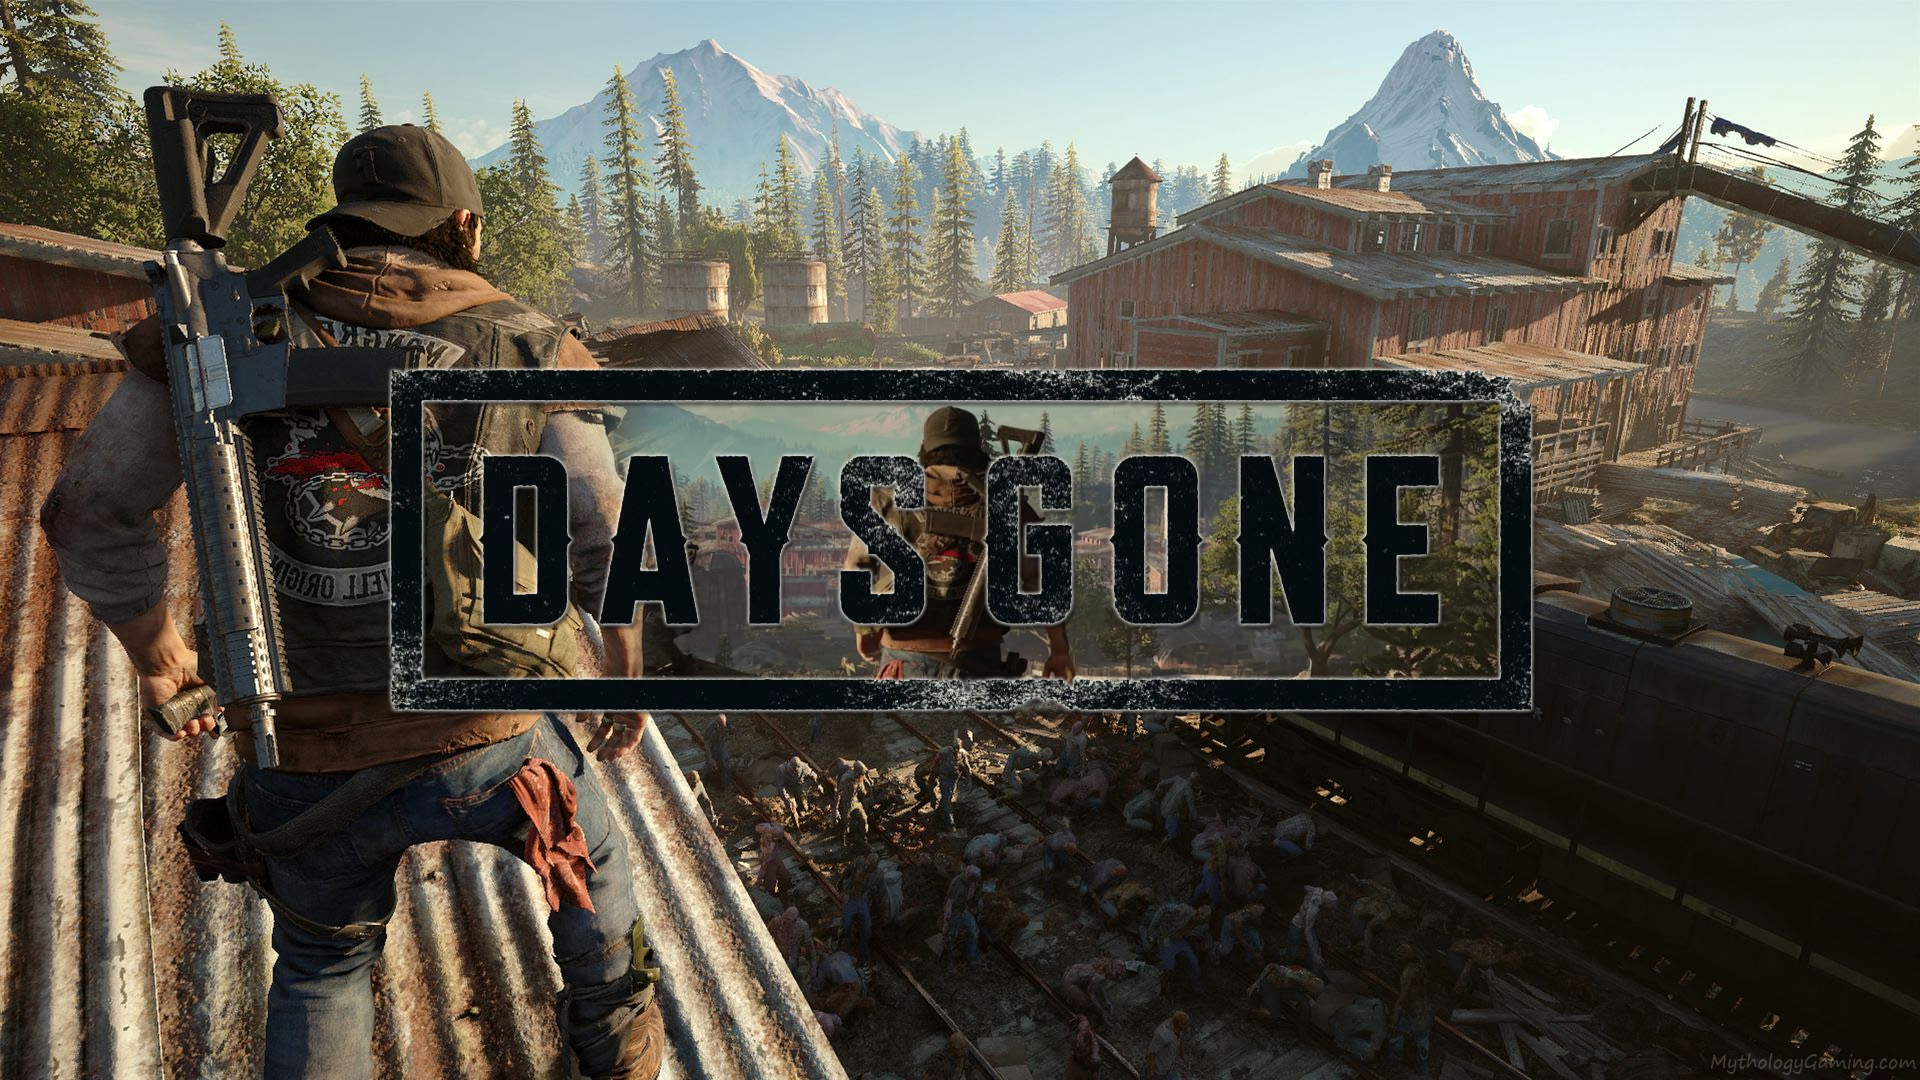 Days Gone created buzz in the upcoming PS4 release